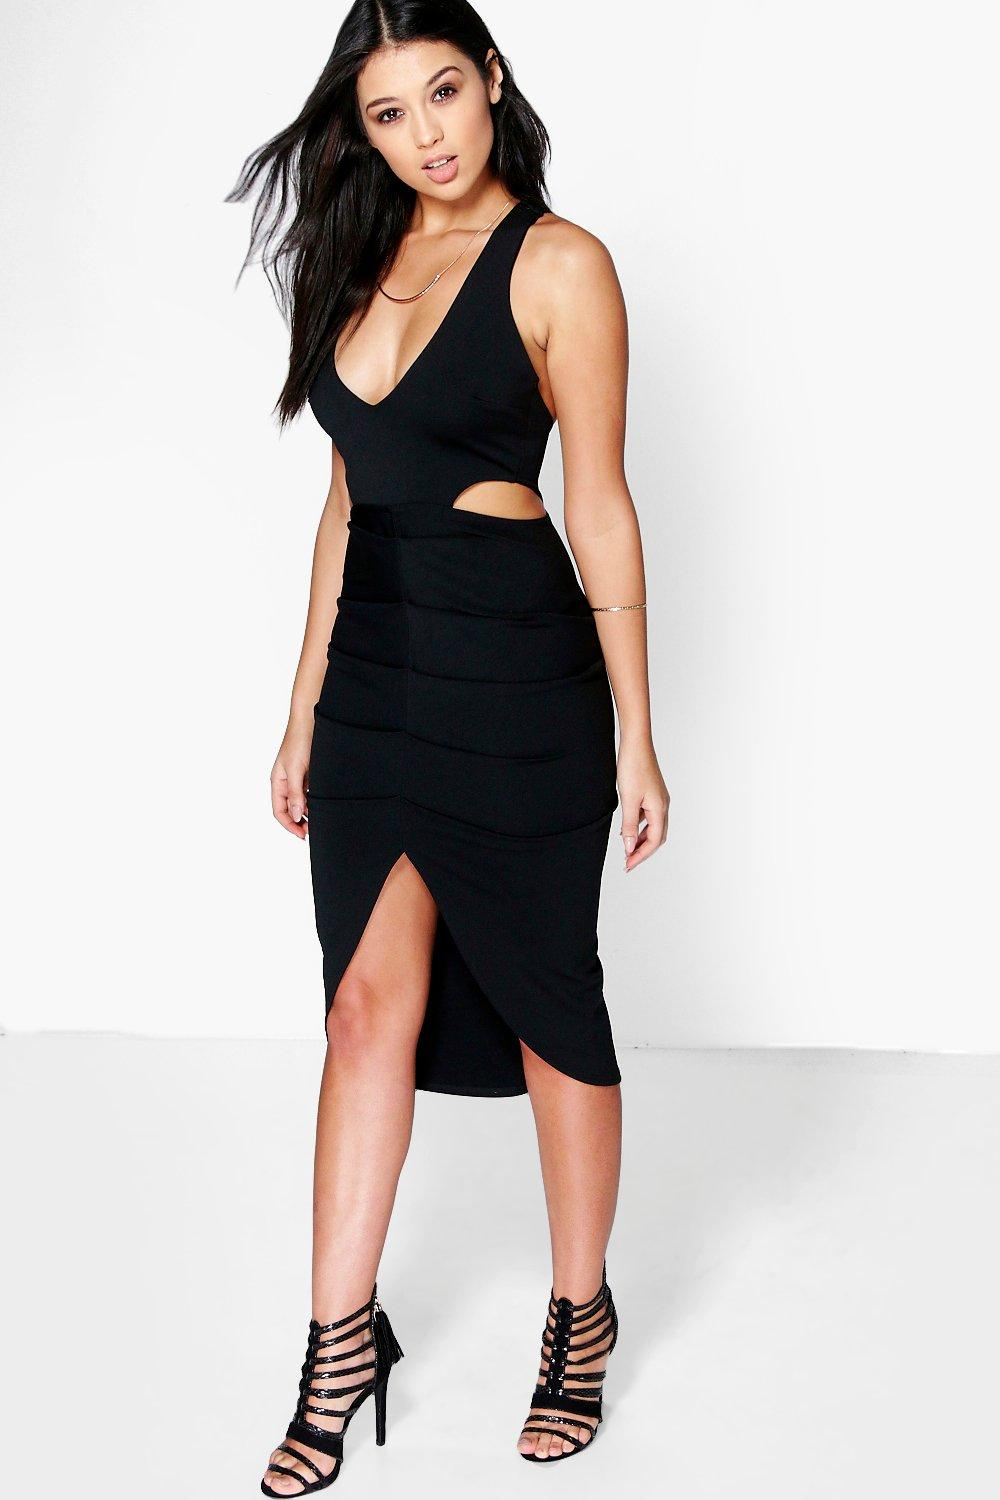 Ruched Front Detail Cut Out Midaxi Dress - black